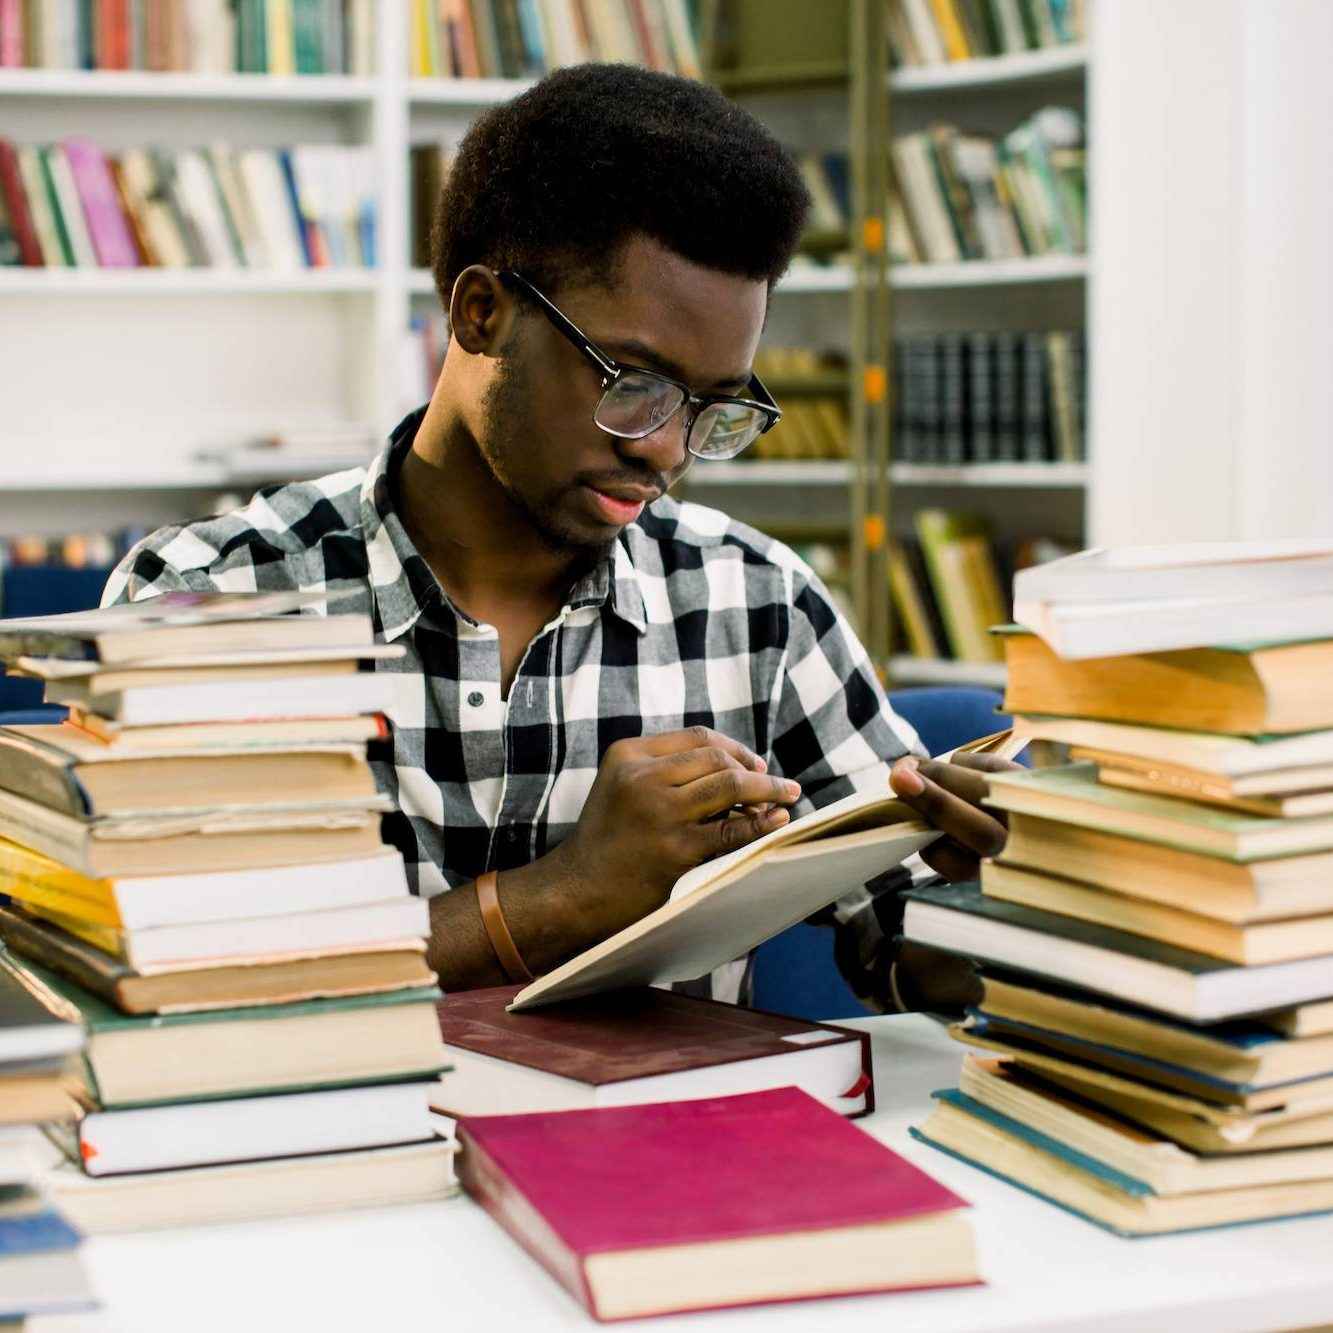 african american male college student sitting at desk in library and reading book. Reflections of paperwork on eyeglasses. Horizontal shape, front view